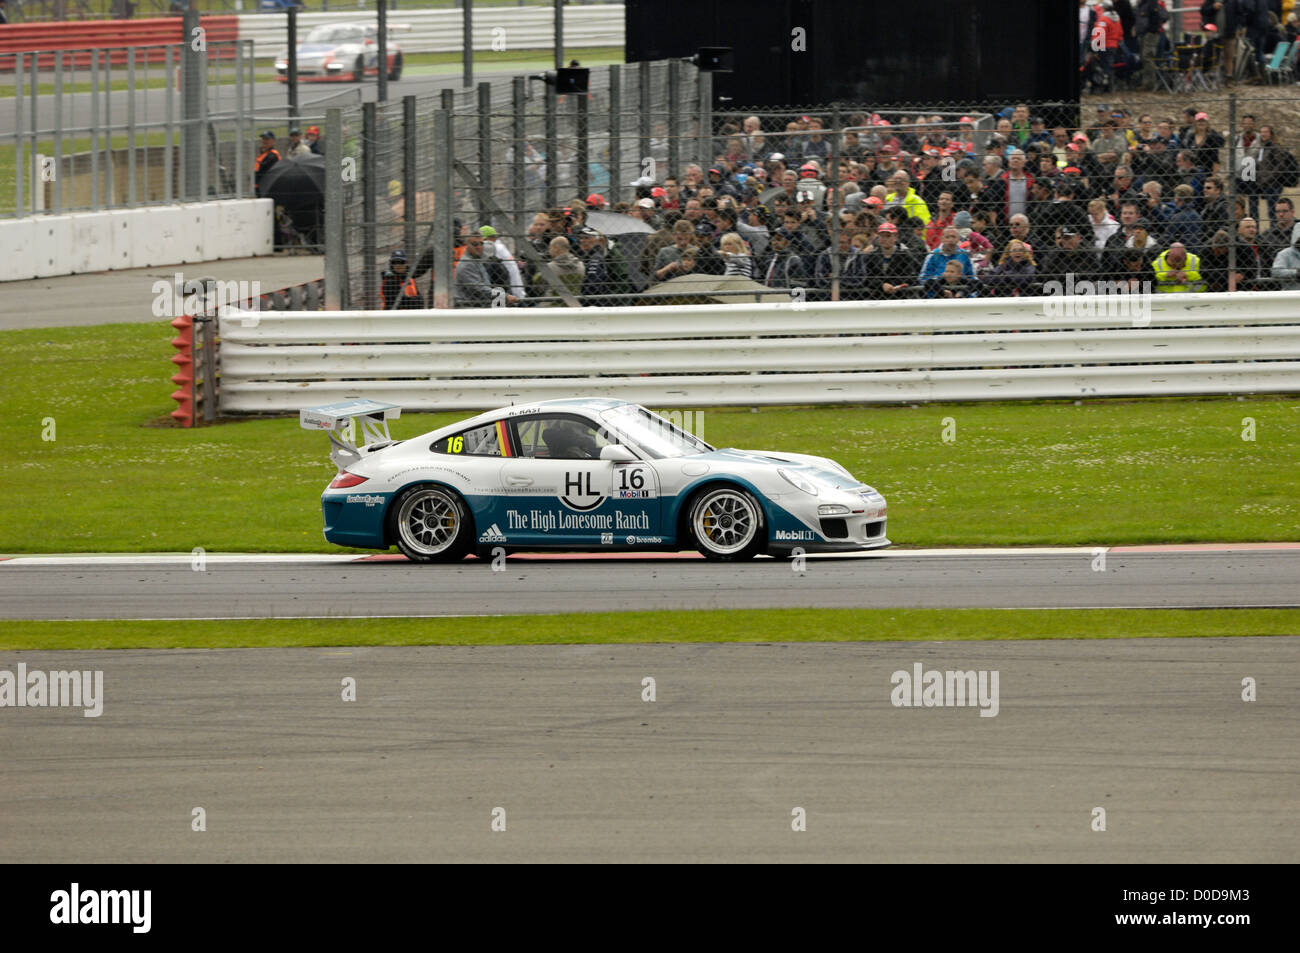 Mobil 1 Stock Photos Images Alamy 16 Porsche Supercup Support Race For Formula Silverstone British Grand Prix Image